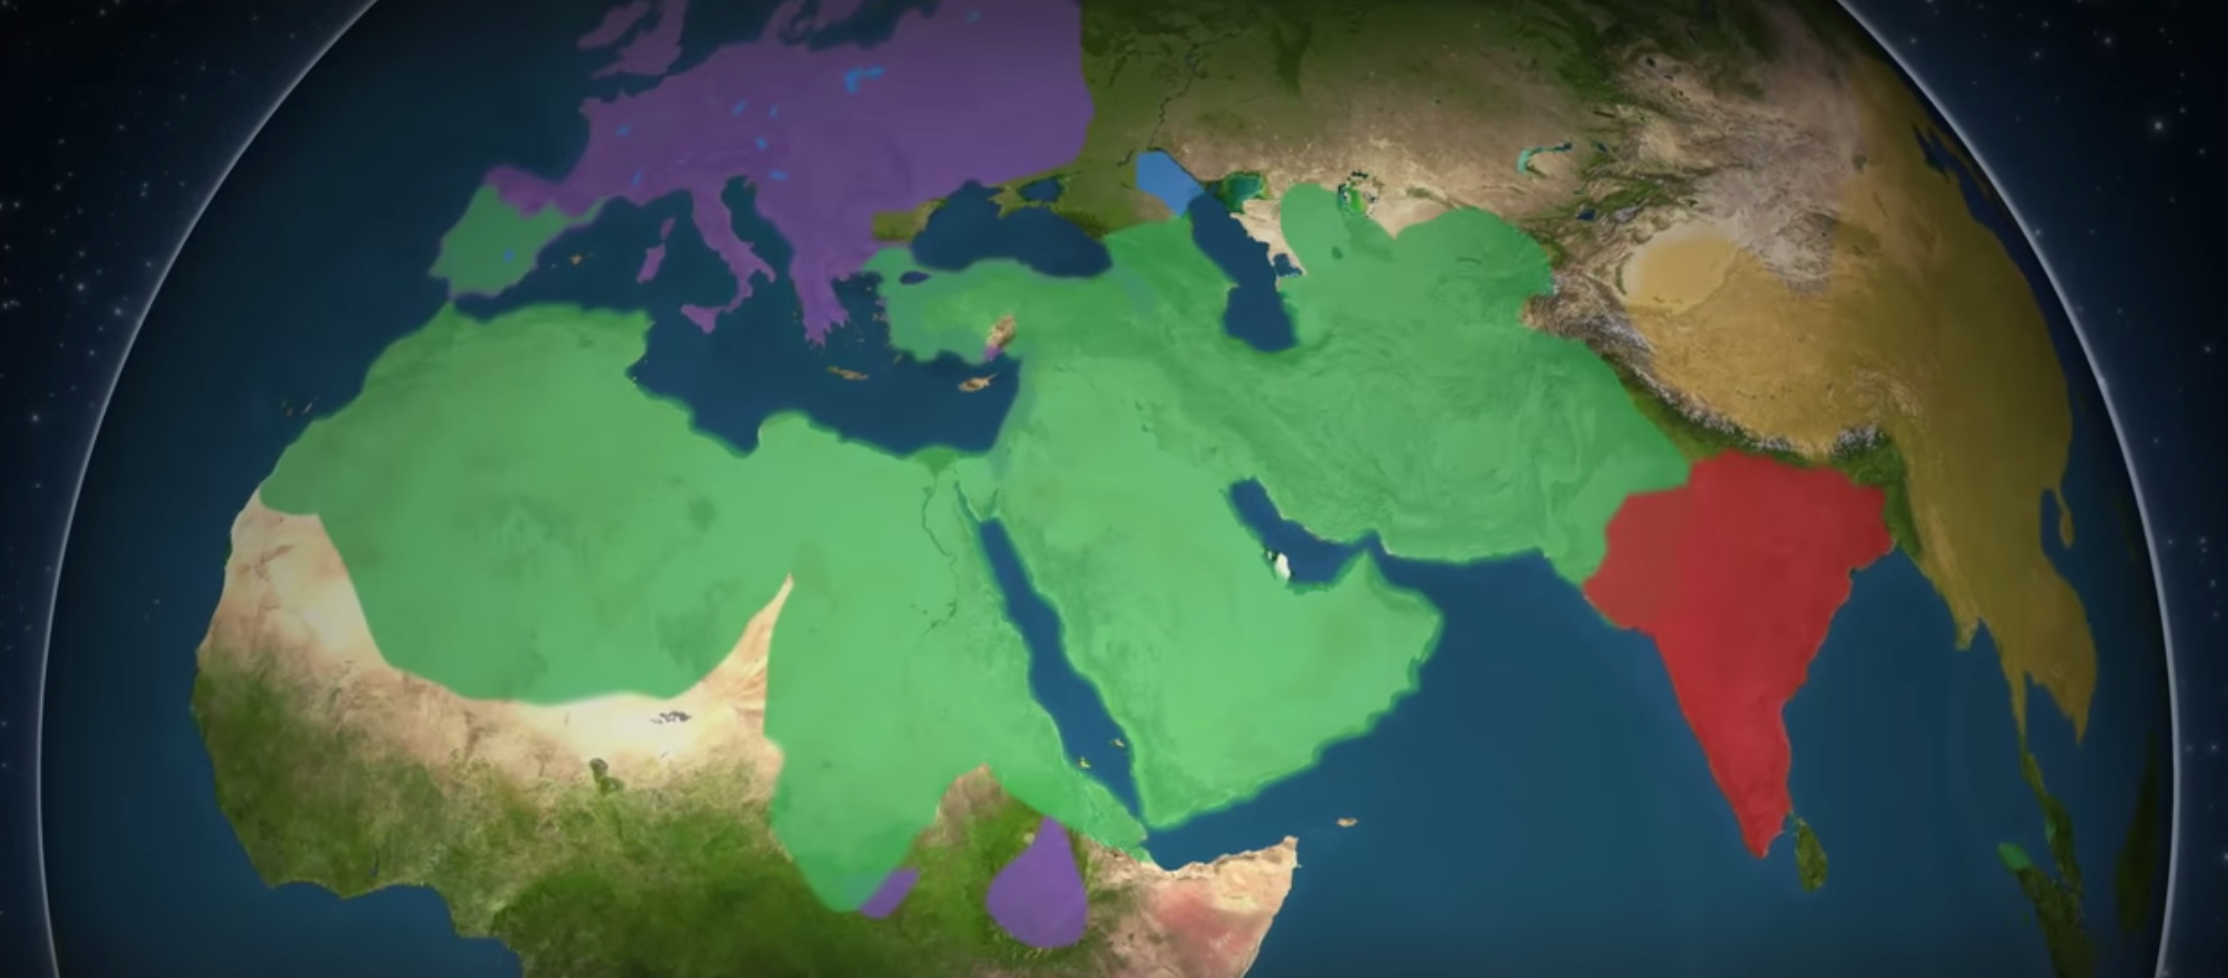 an analysis of religious spread through conquest The muslim community spread through the middle east through conquest, and the resulting growth of the muslim state provided the ground in which the recently revealed faith could take root and flourish the military conquest was inspired by religion, but it was also motivated by greed and politics.